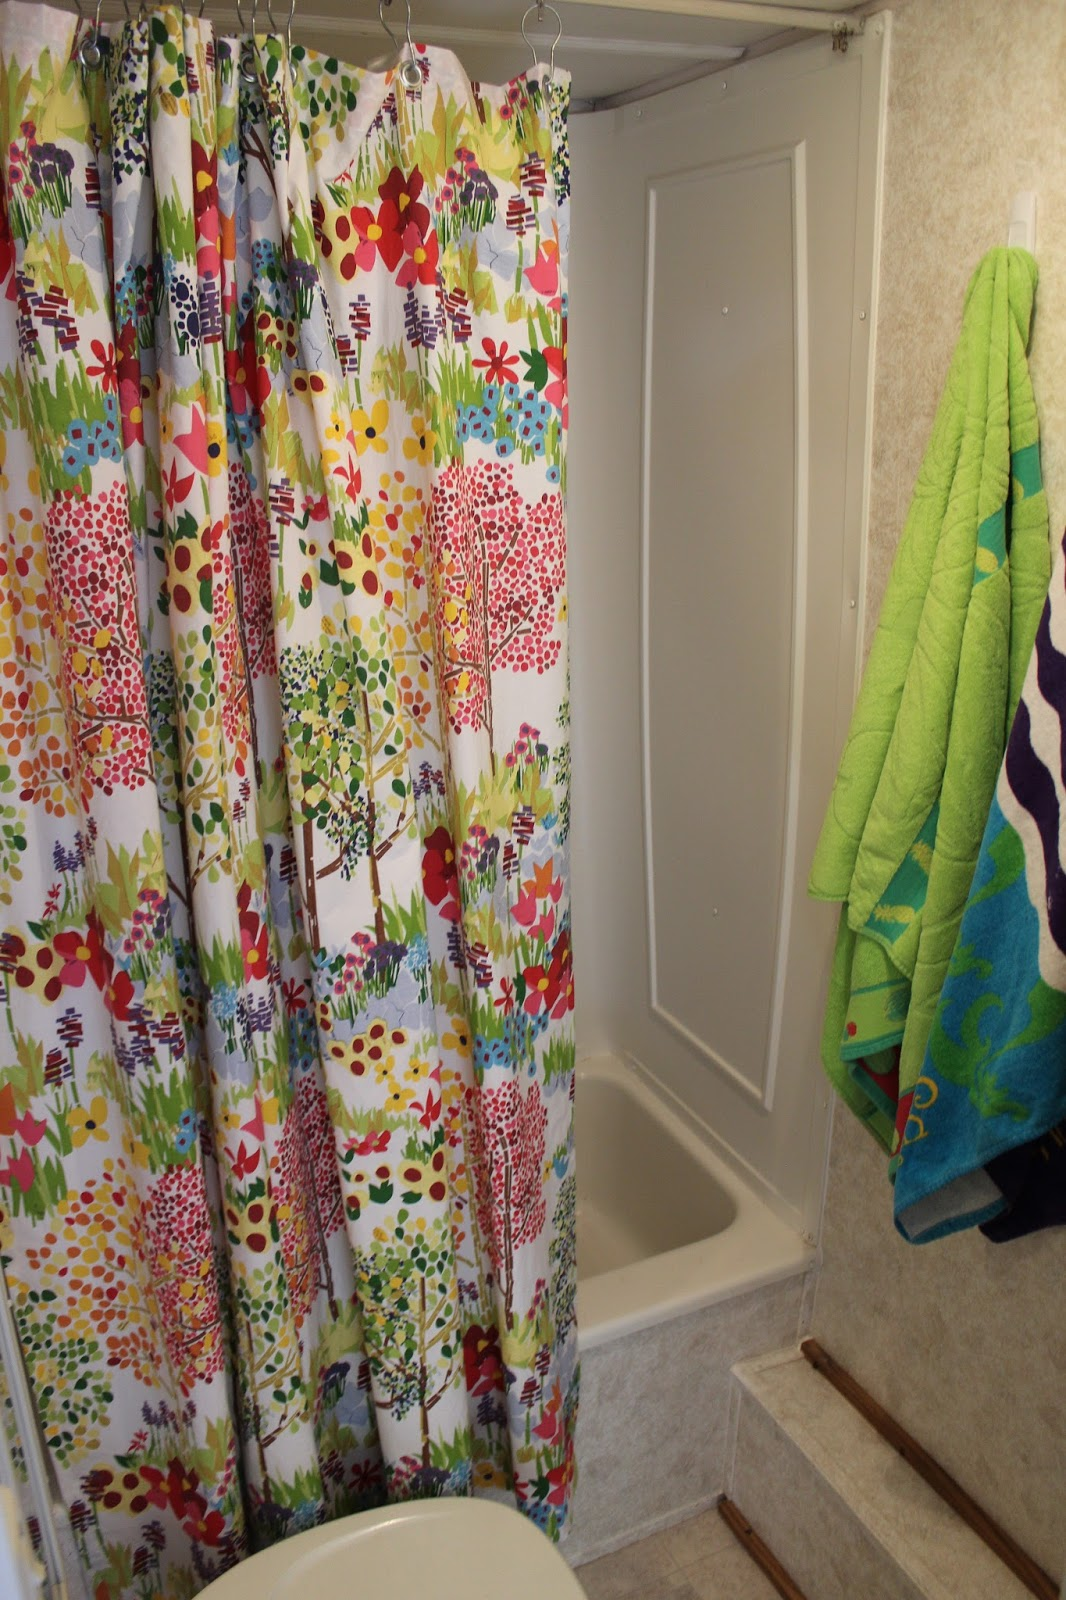 Attractive For The Bath I Added Bright Color Towels And Made A Shower Curtain With The  Same Fabric As The Quilt Backing. Photos Of The New Shower Curtain And The  Old ...